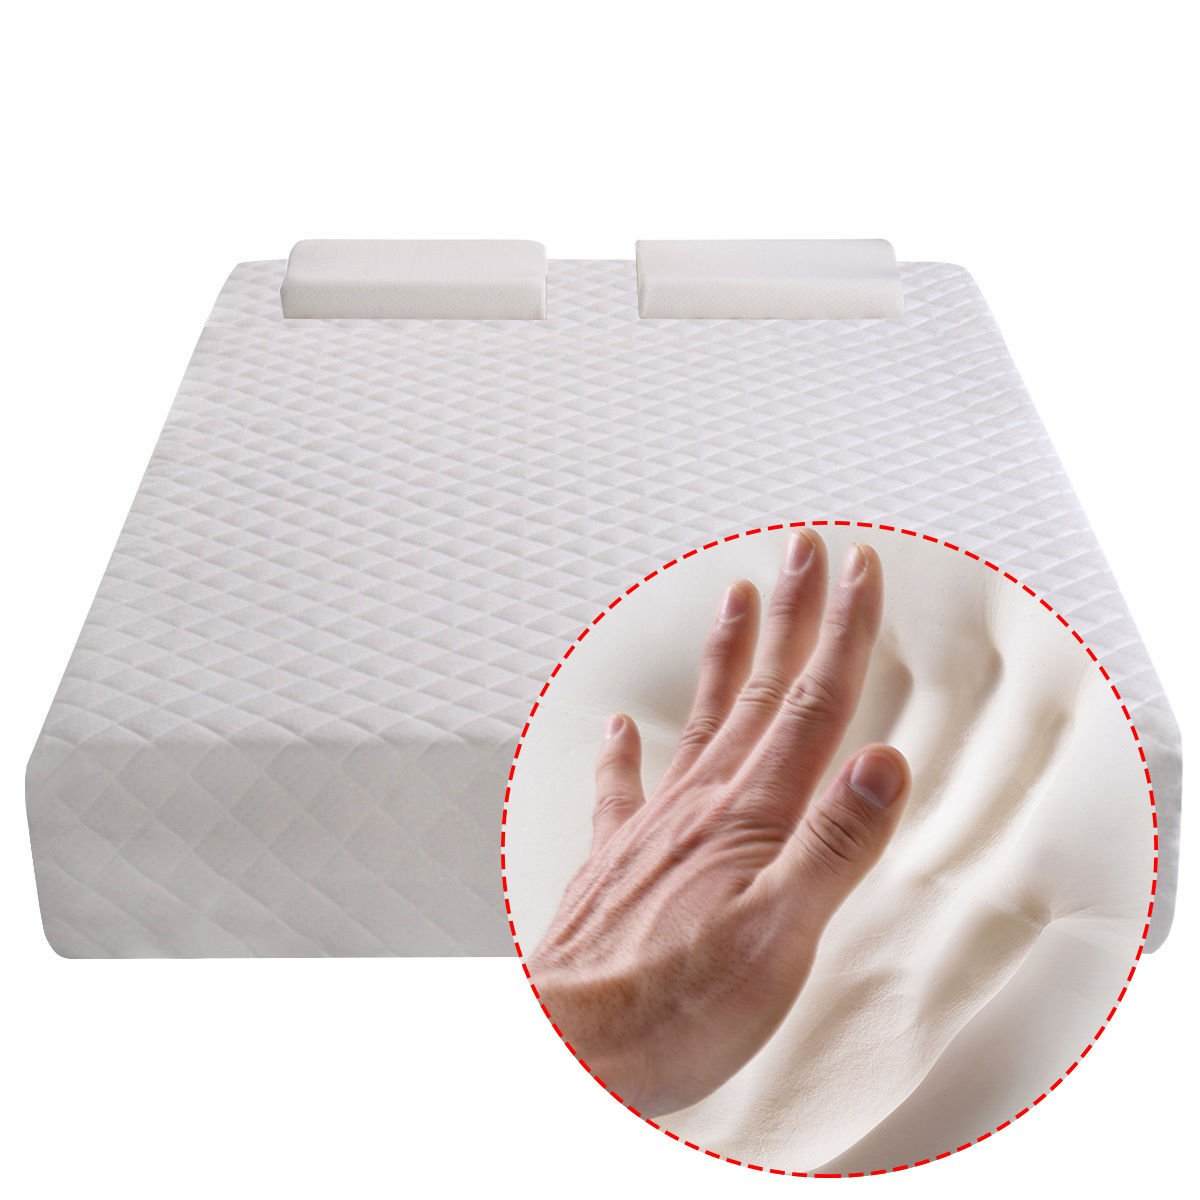 New Full Size 10 Memory Foam Mattress Pad Bed Topper 2 Free Pillows